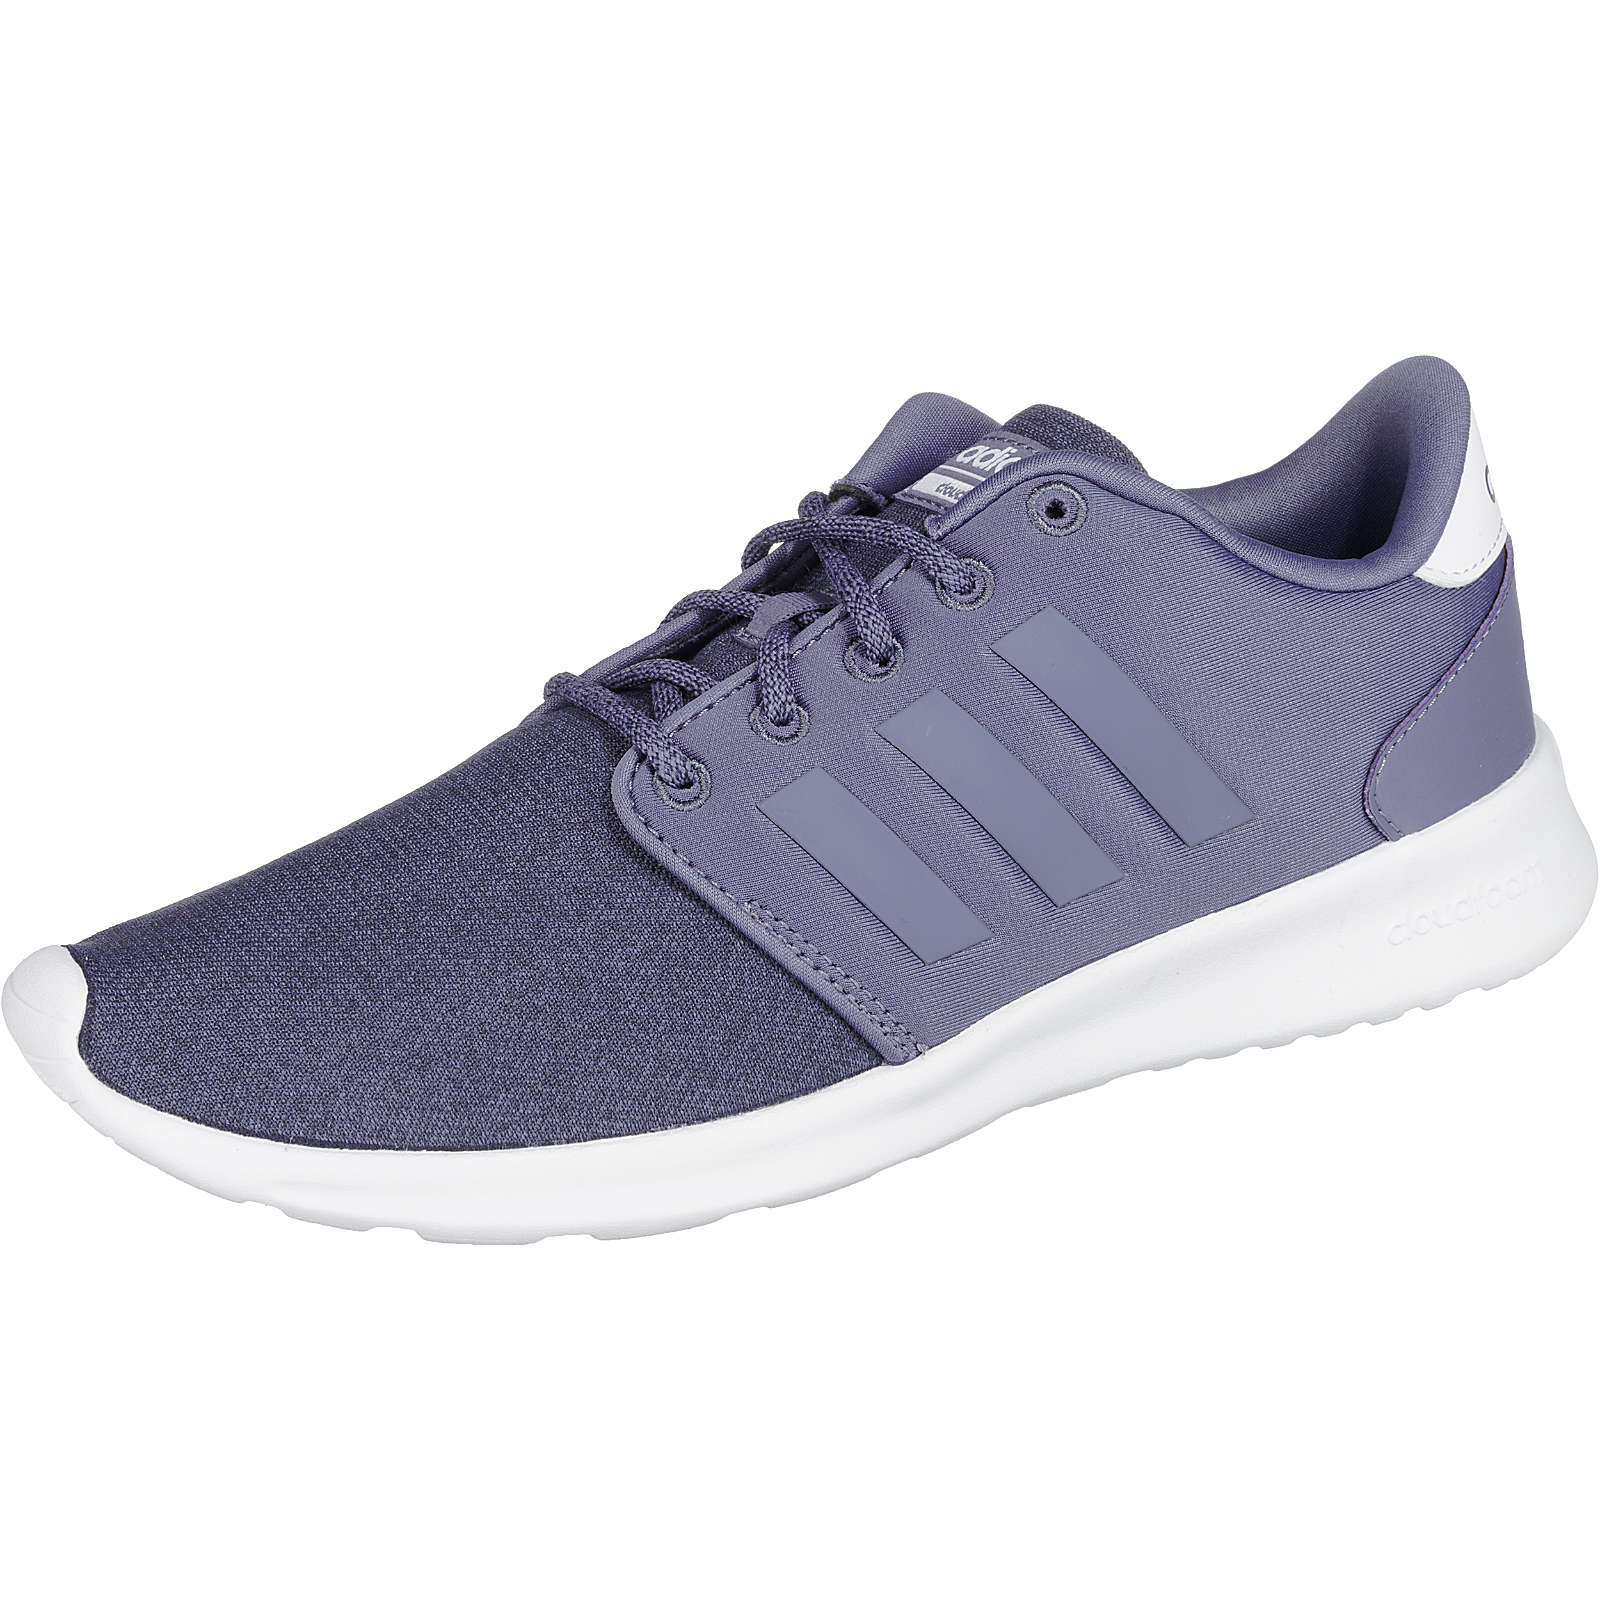 more photos 8dfdd 70798 adidas Sport Inspired Cf Qt Racer Sneakers Low blau Damen